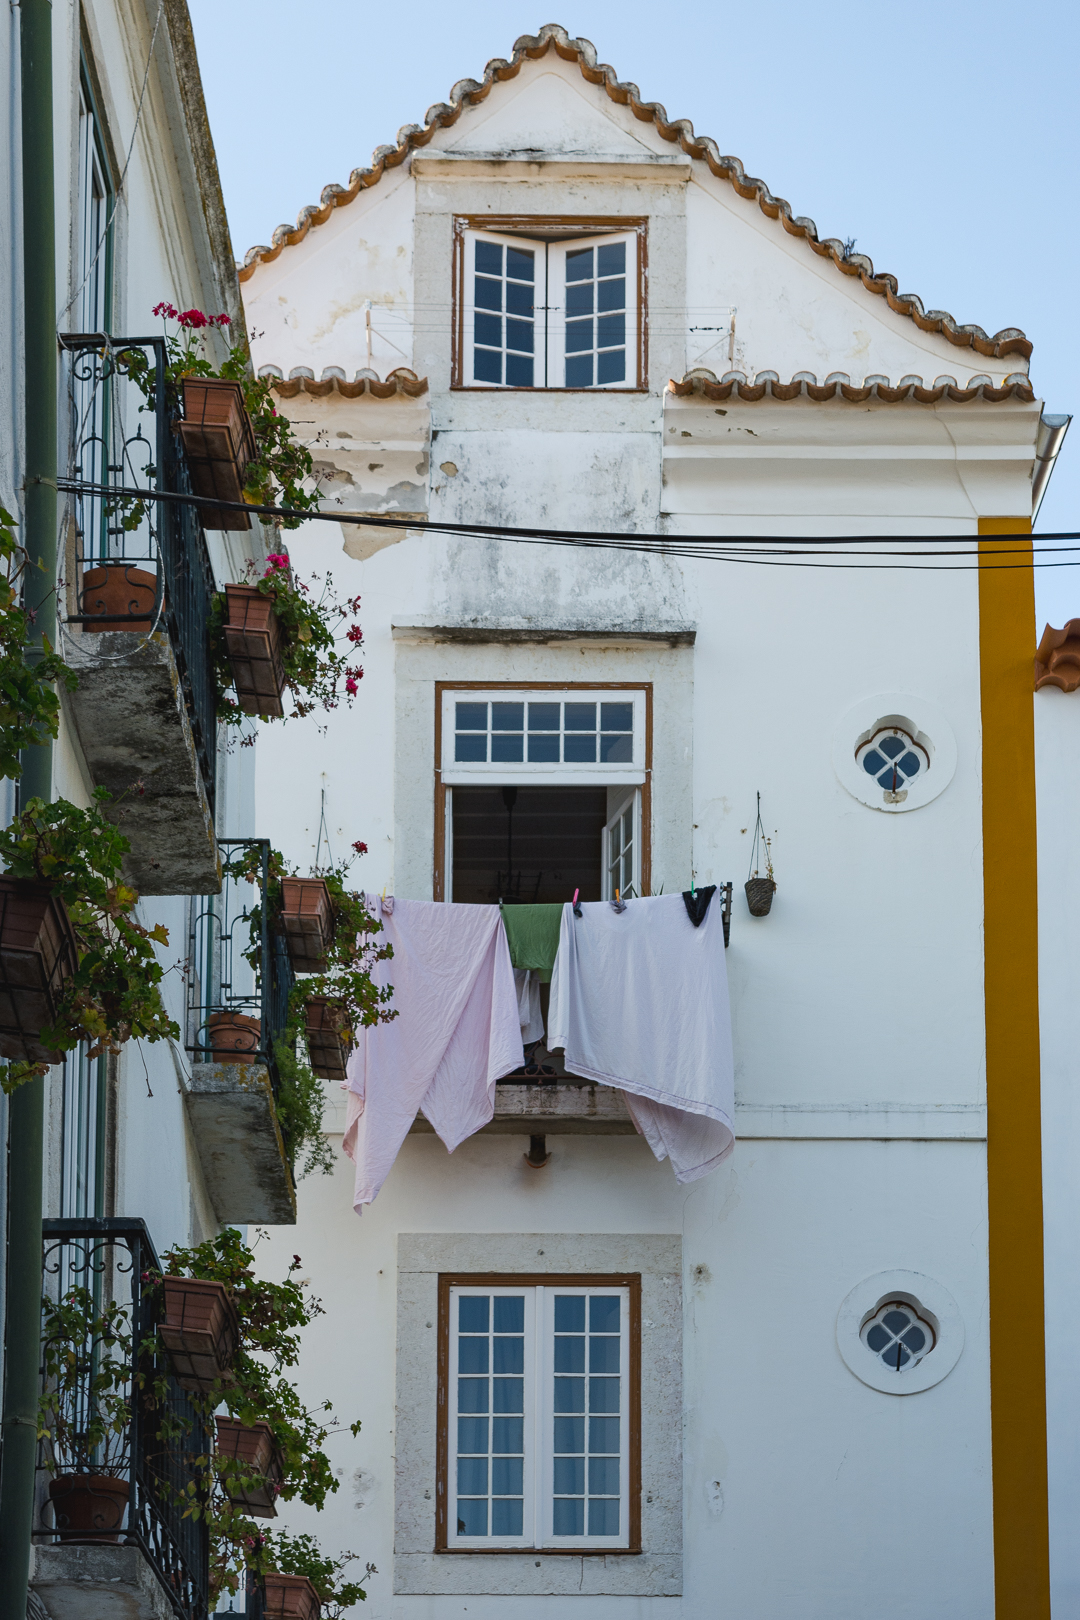 Typical charming house in Lisbon Portugal